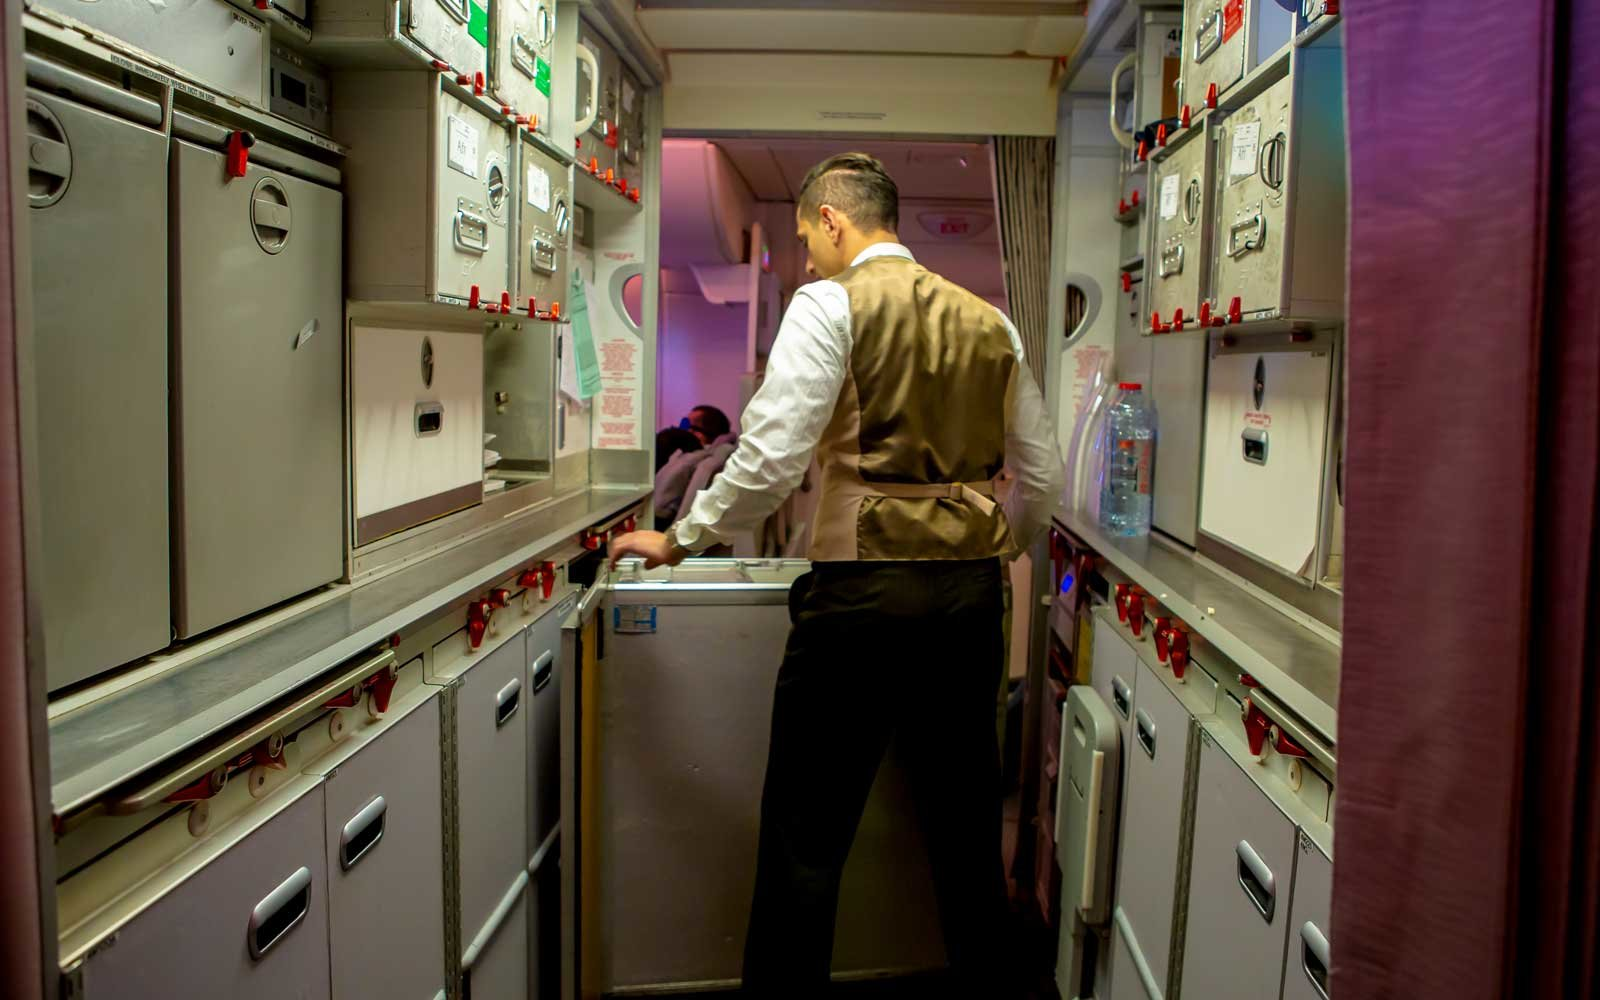 An Inside Look at a Day in the Life of an Emirates Flight